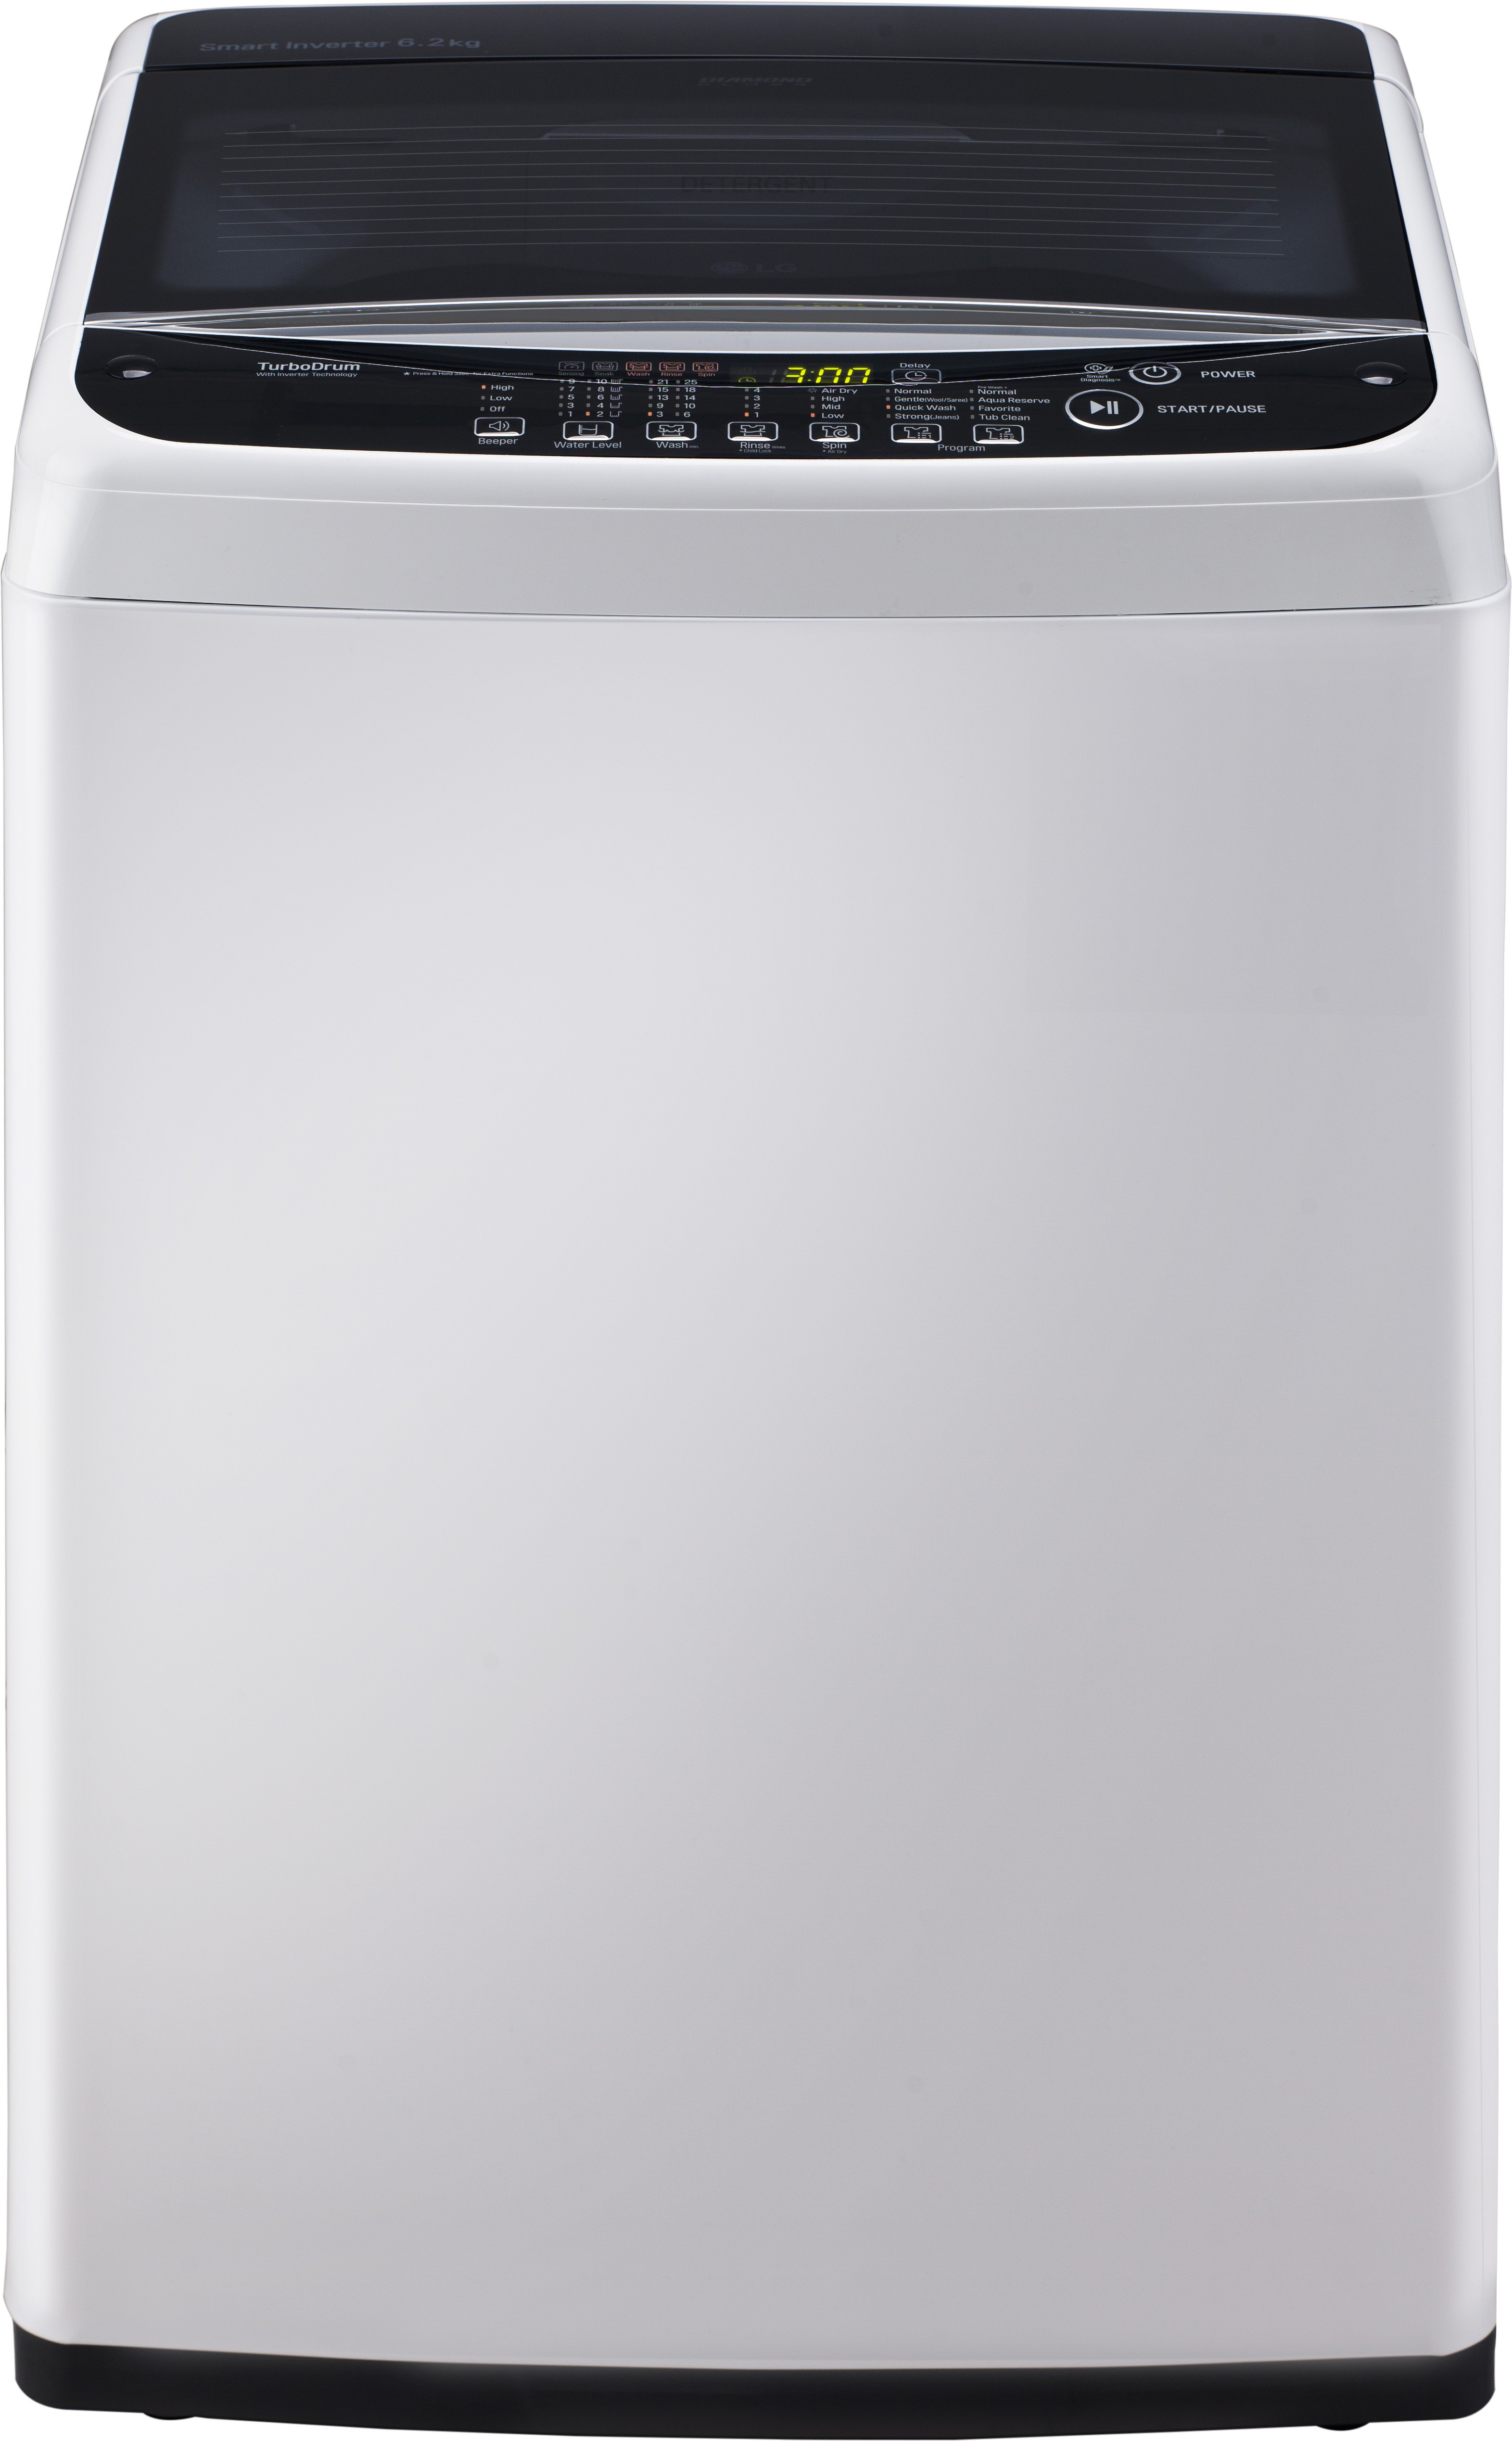 LG 6.2 kg Fully Automatic Top Load Washing Machine(T7281NDDLZ) Image